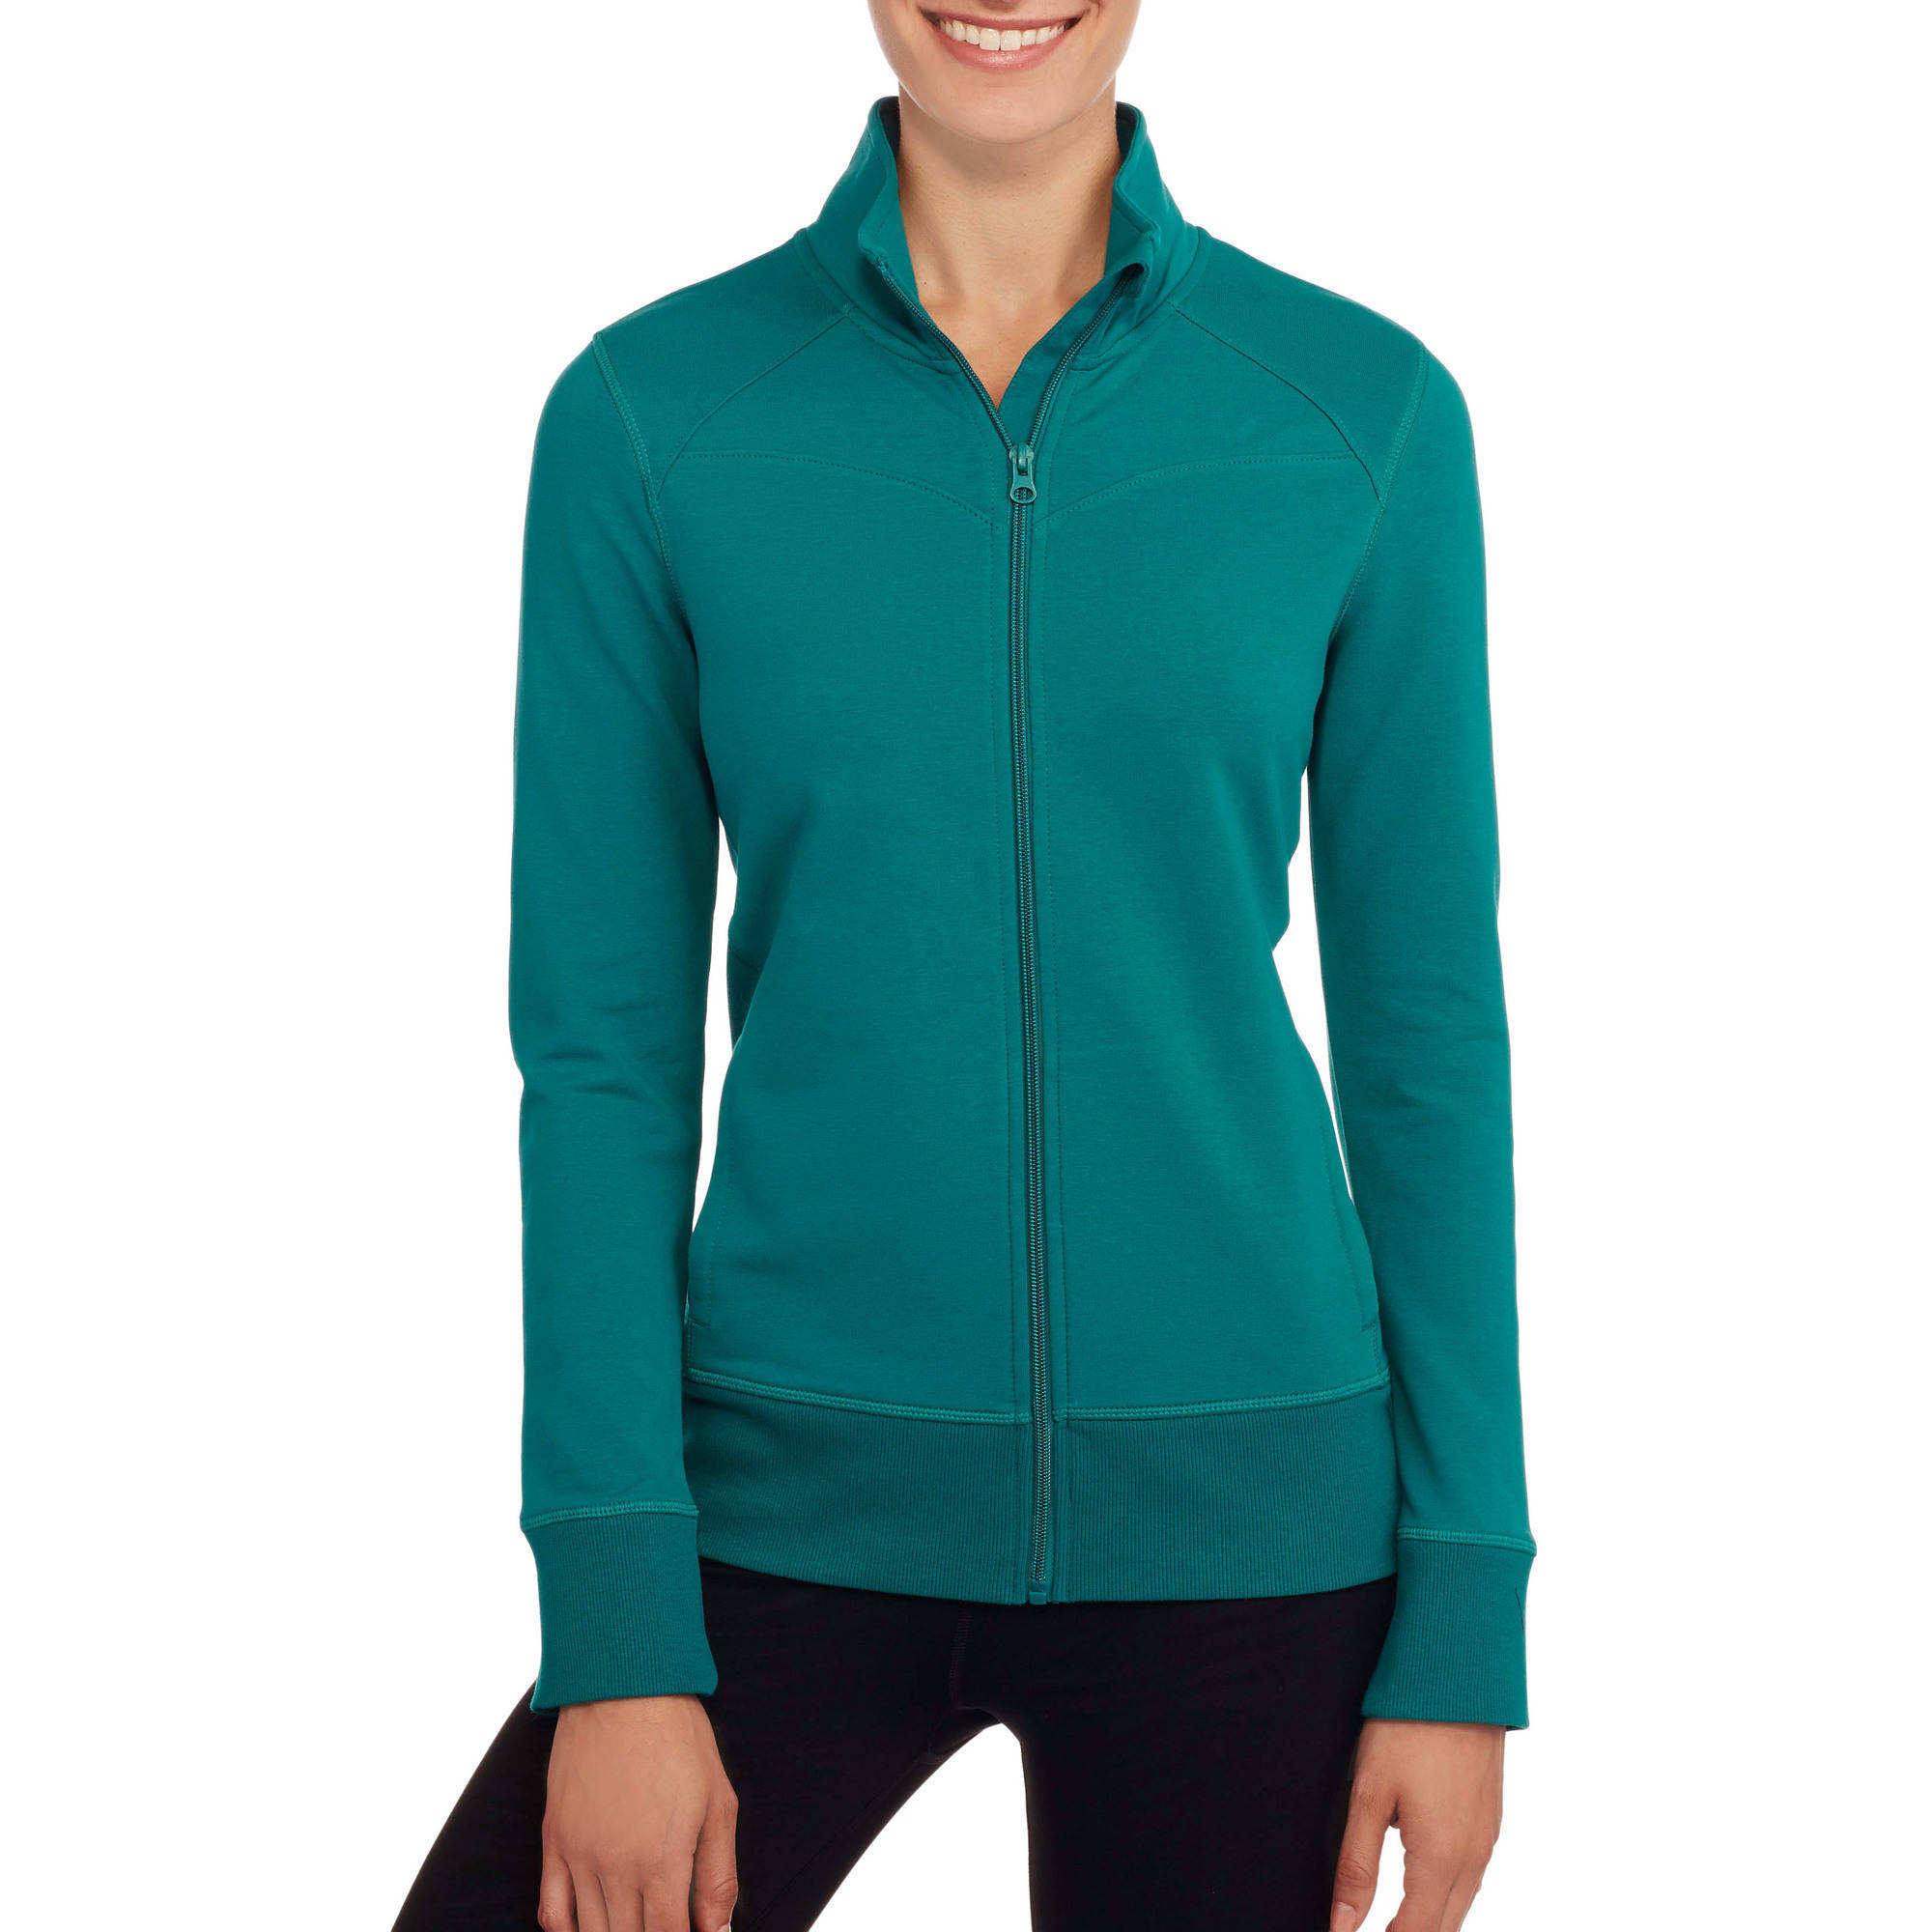 Danskin Now Women's French Terry Jacket